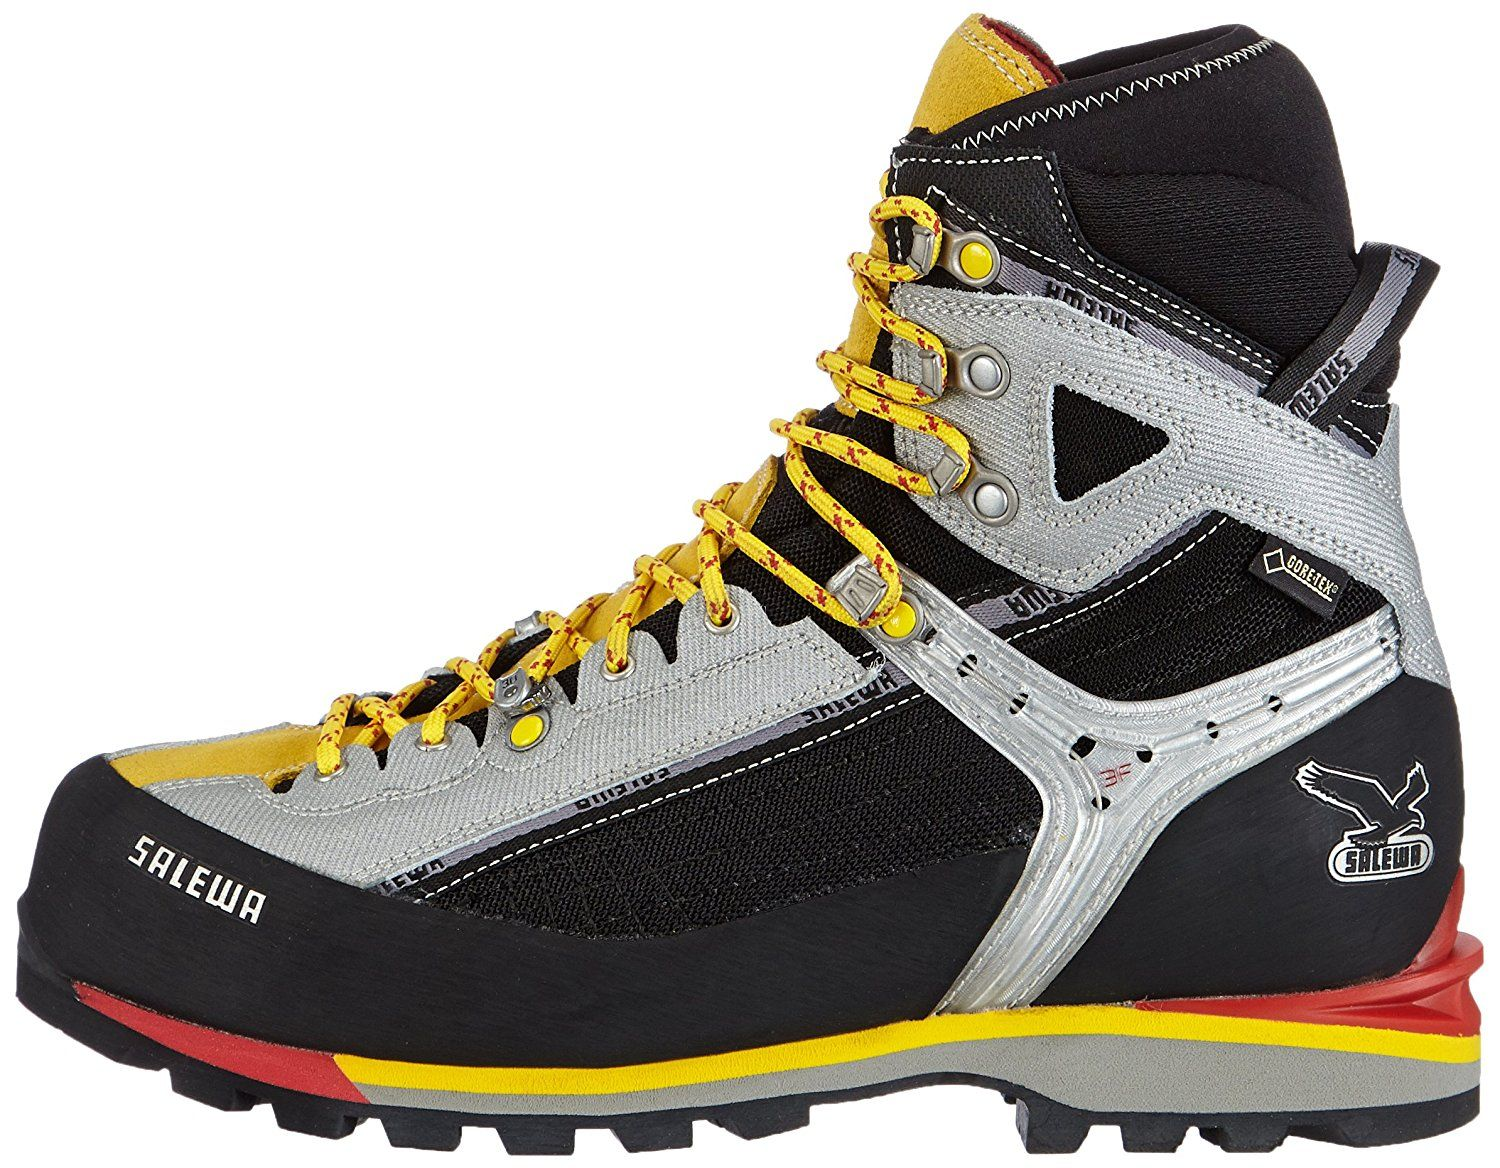 Salewa Men S Ms Raven Combi Gtx M Mountaineering Boot Check This Awesome Product By Going To The Link At The Image Mountaineering Boots Hiking Boots Boots